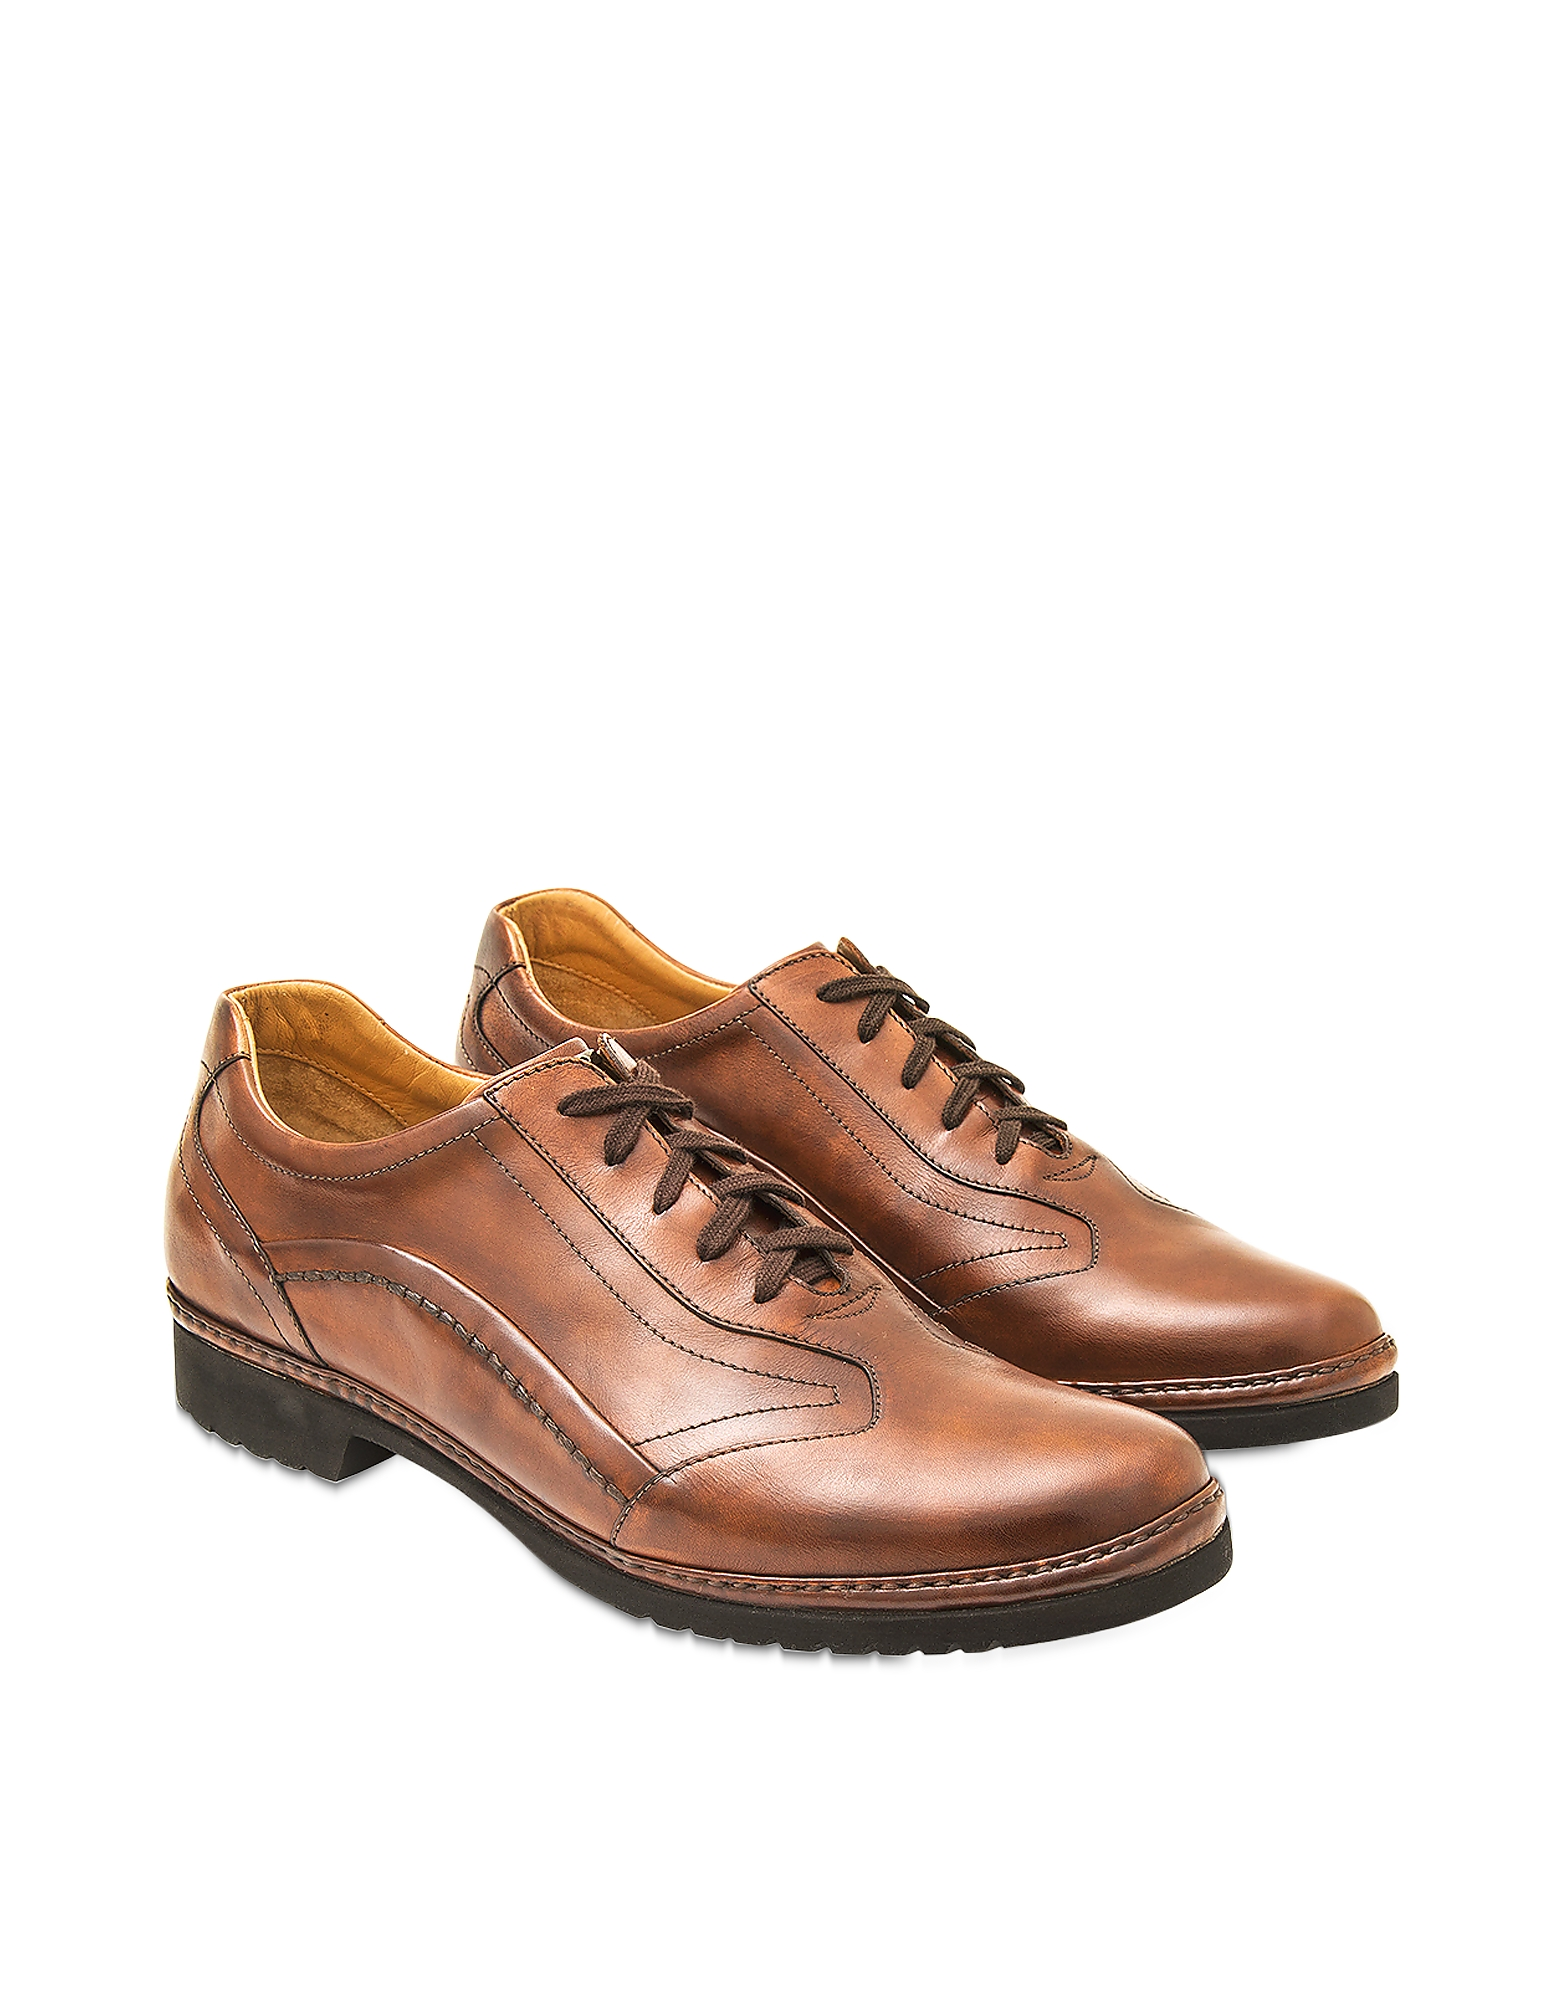 Pakerson Designer Shoes, Tan Italian Handmade Leather Lace-up Shoes